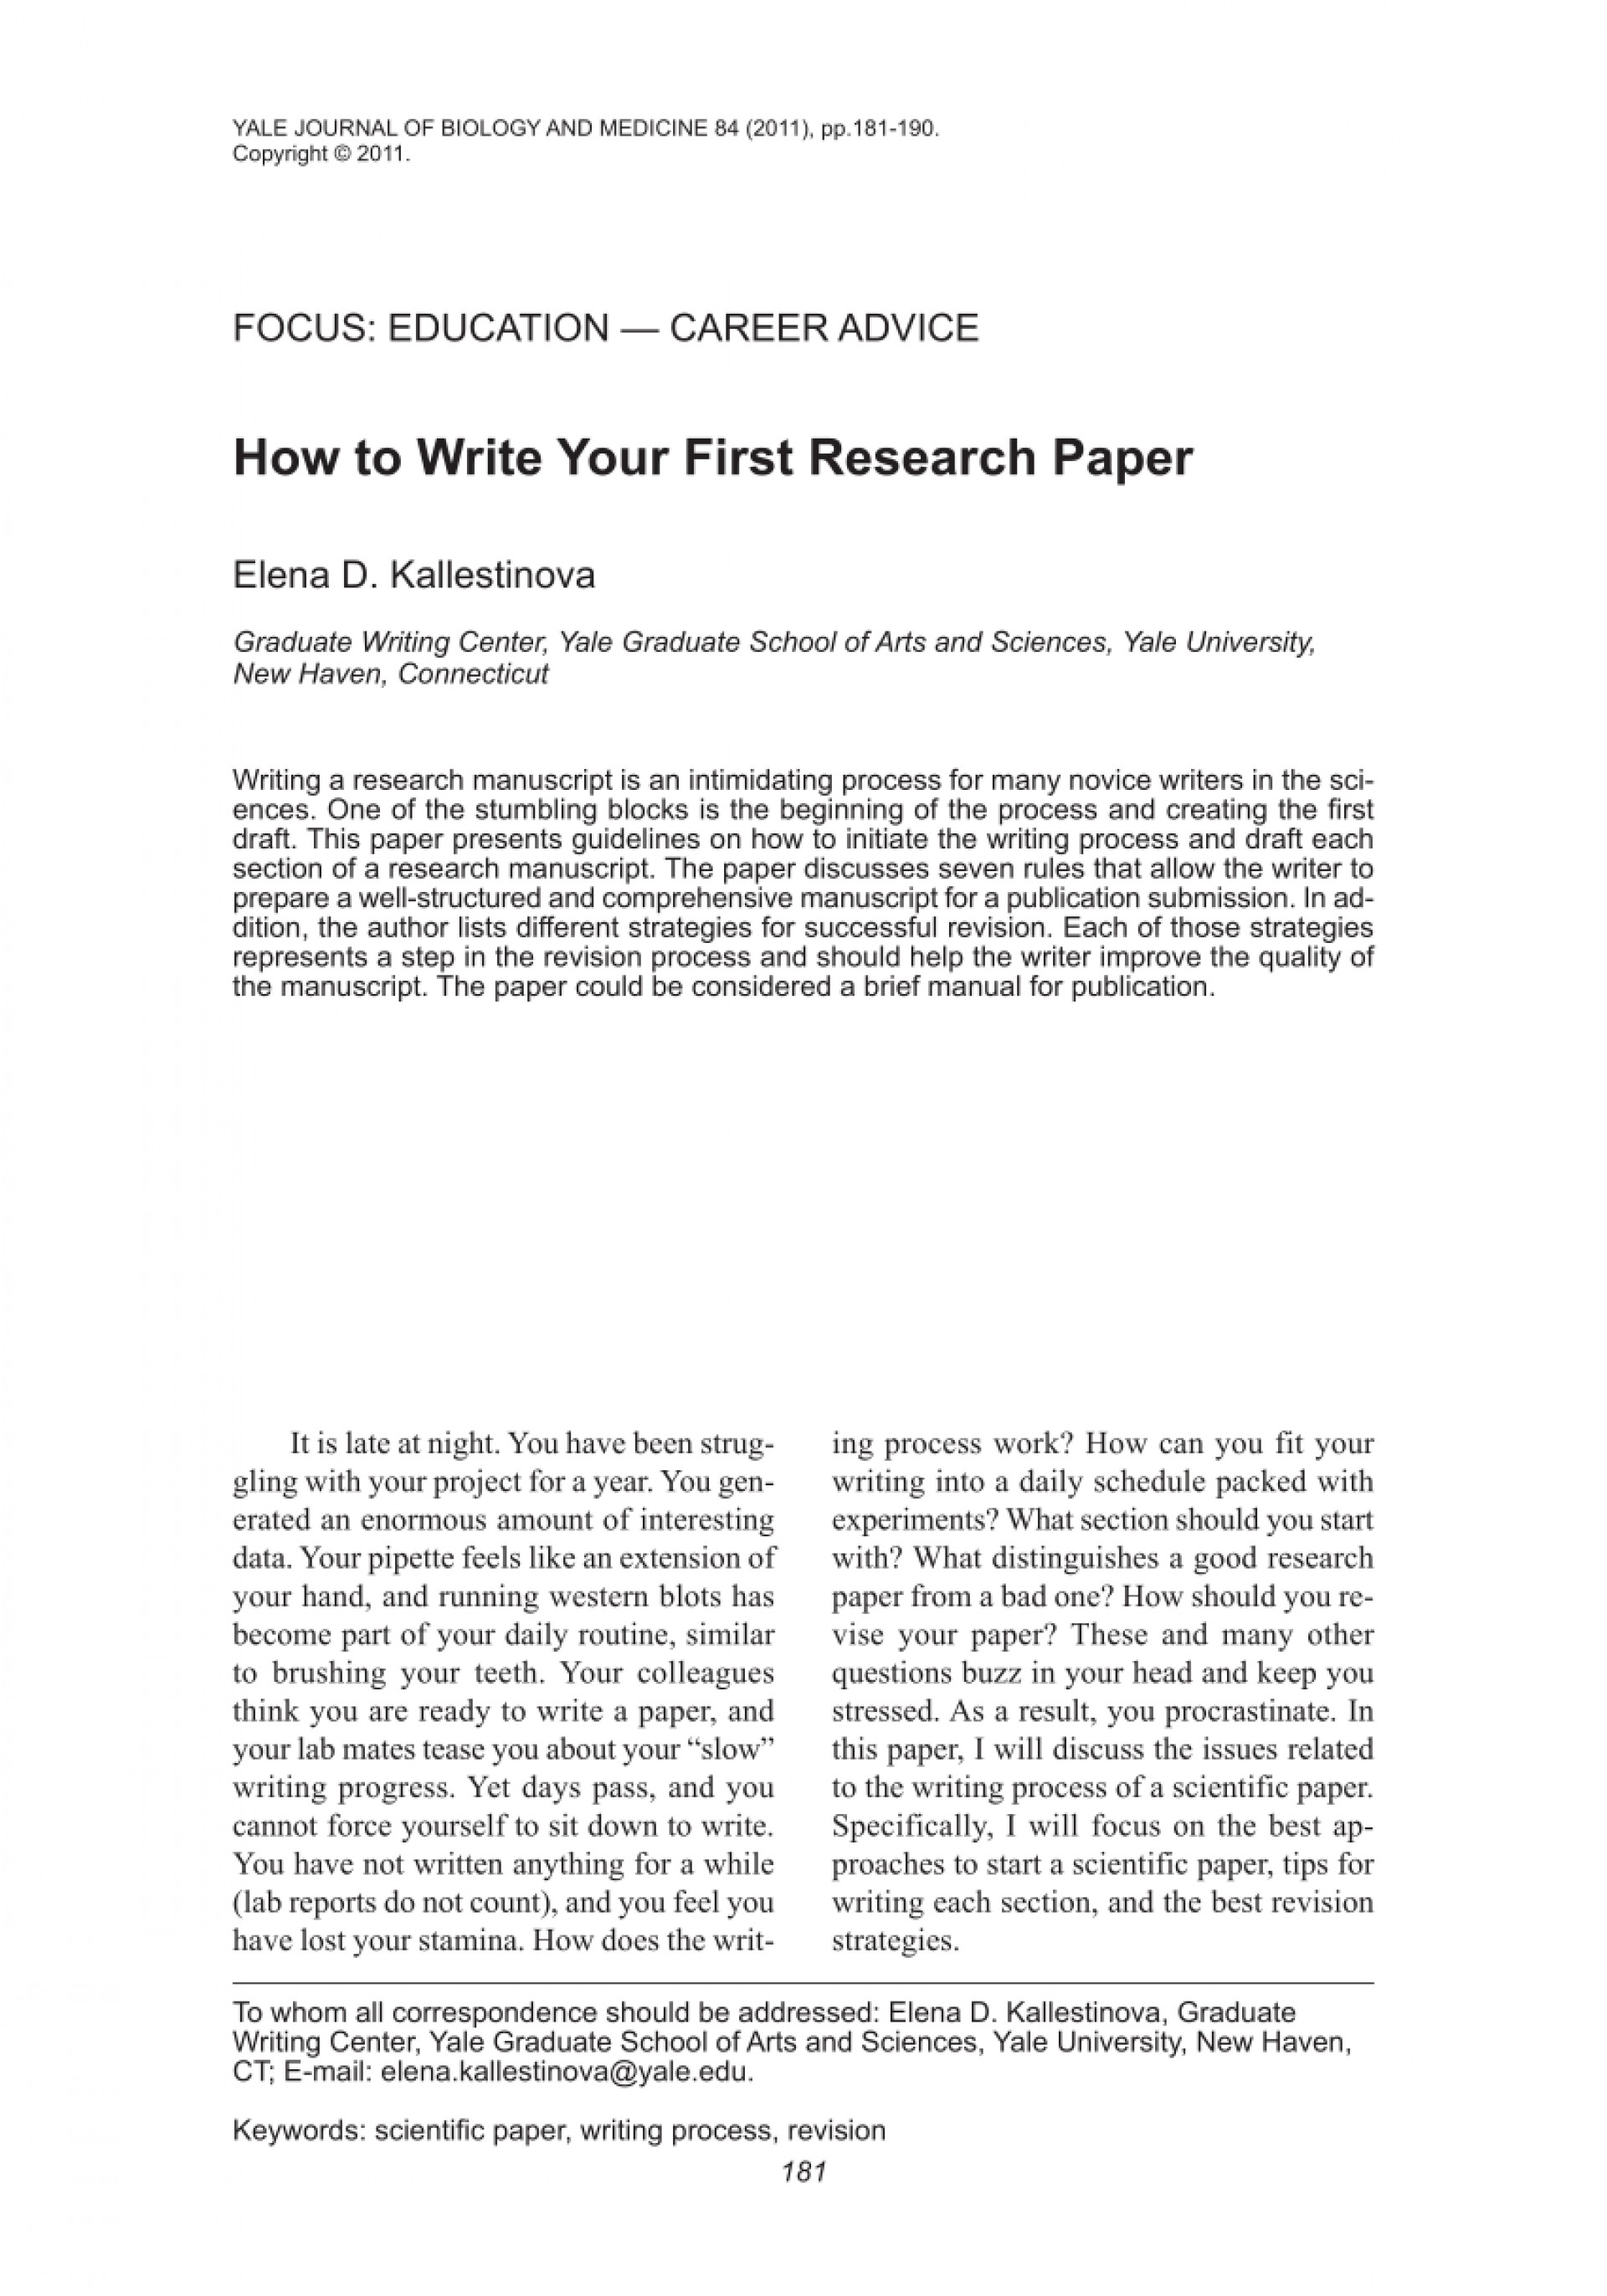 007 Steps In Writing The Research Paper Pdf Wonderful 10 Markman 1920